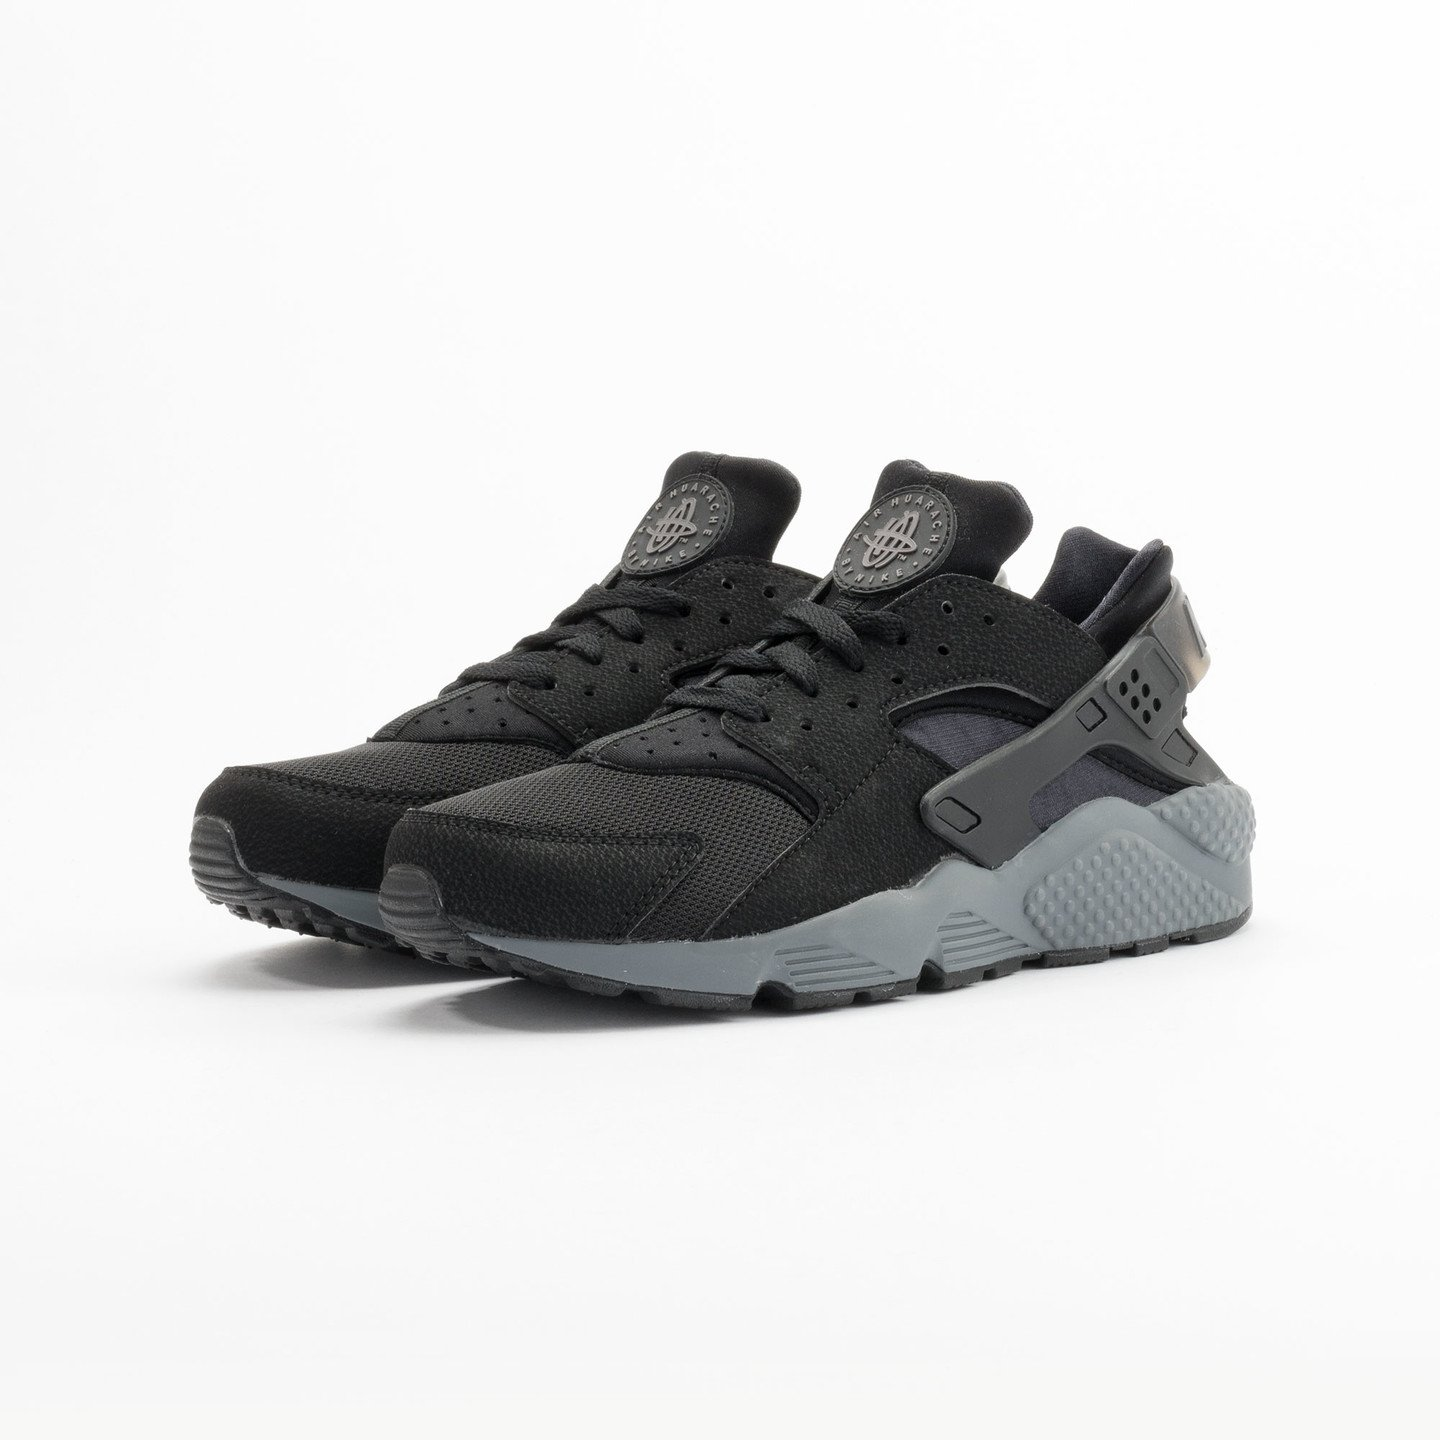 Nike Air Huarache Black / Dark Grey 318429-010-45.5